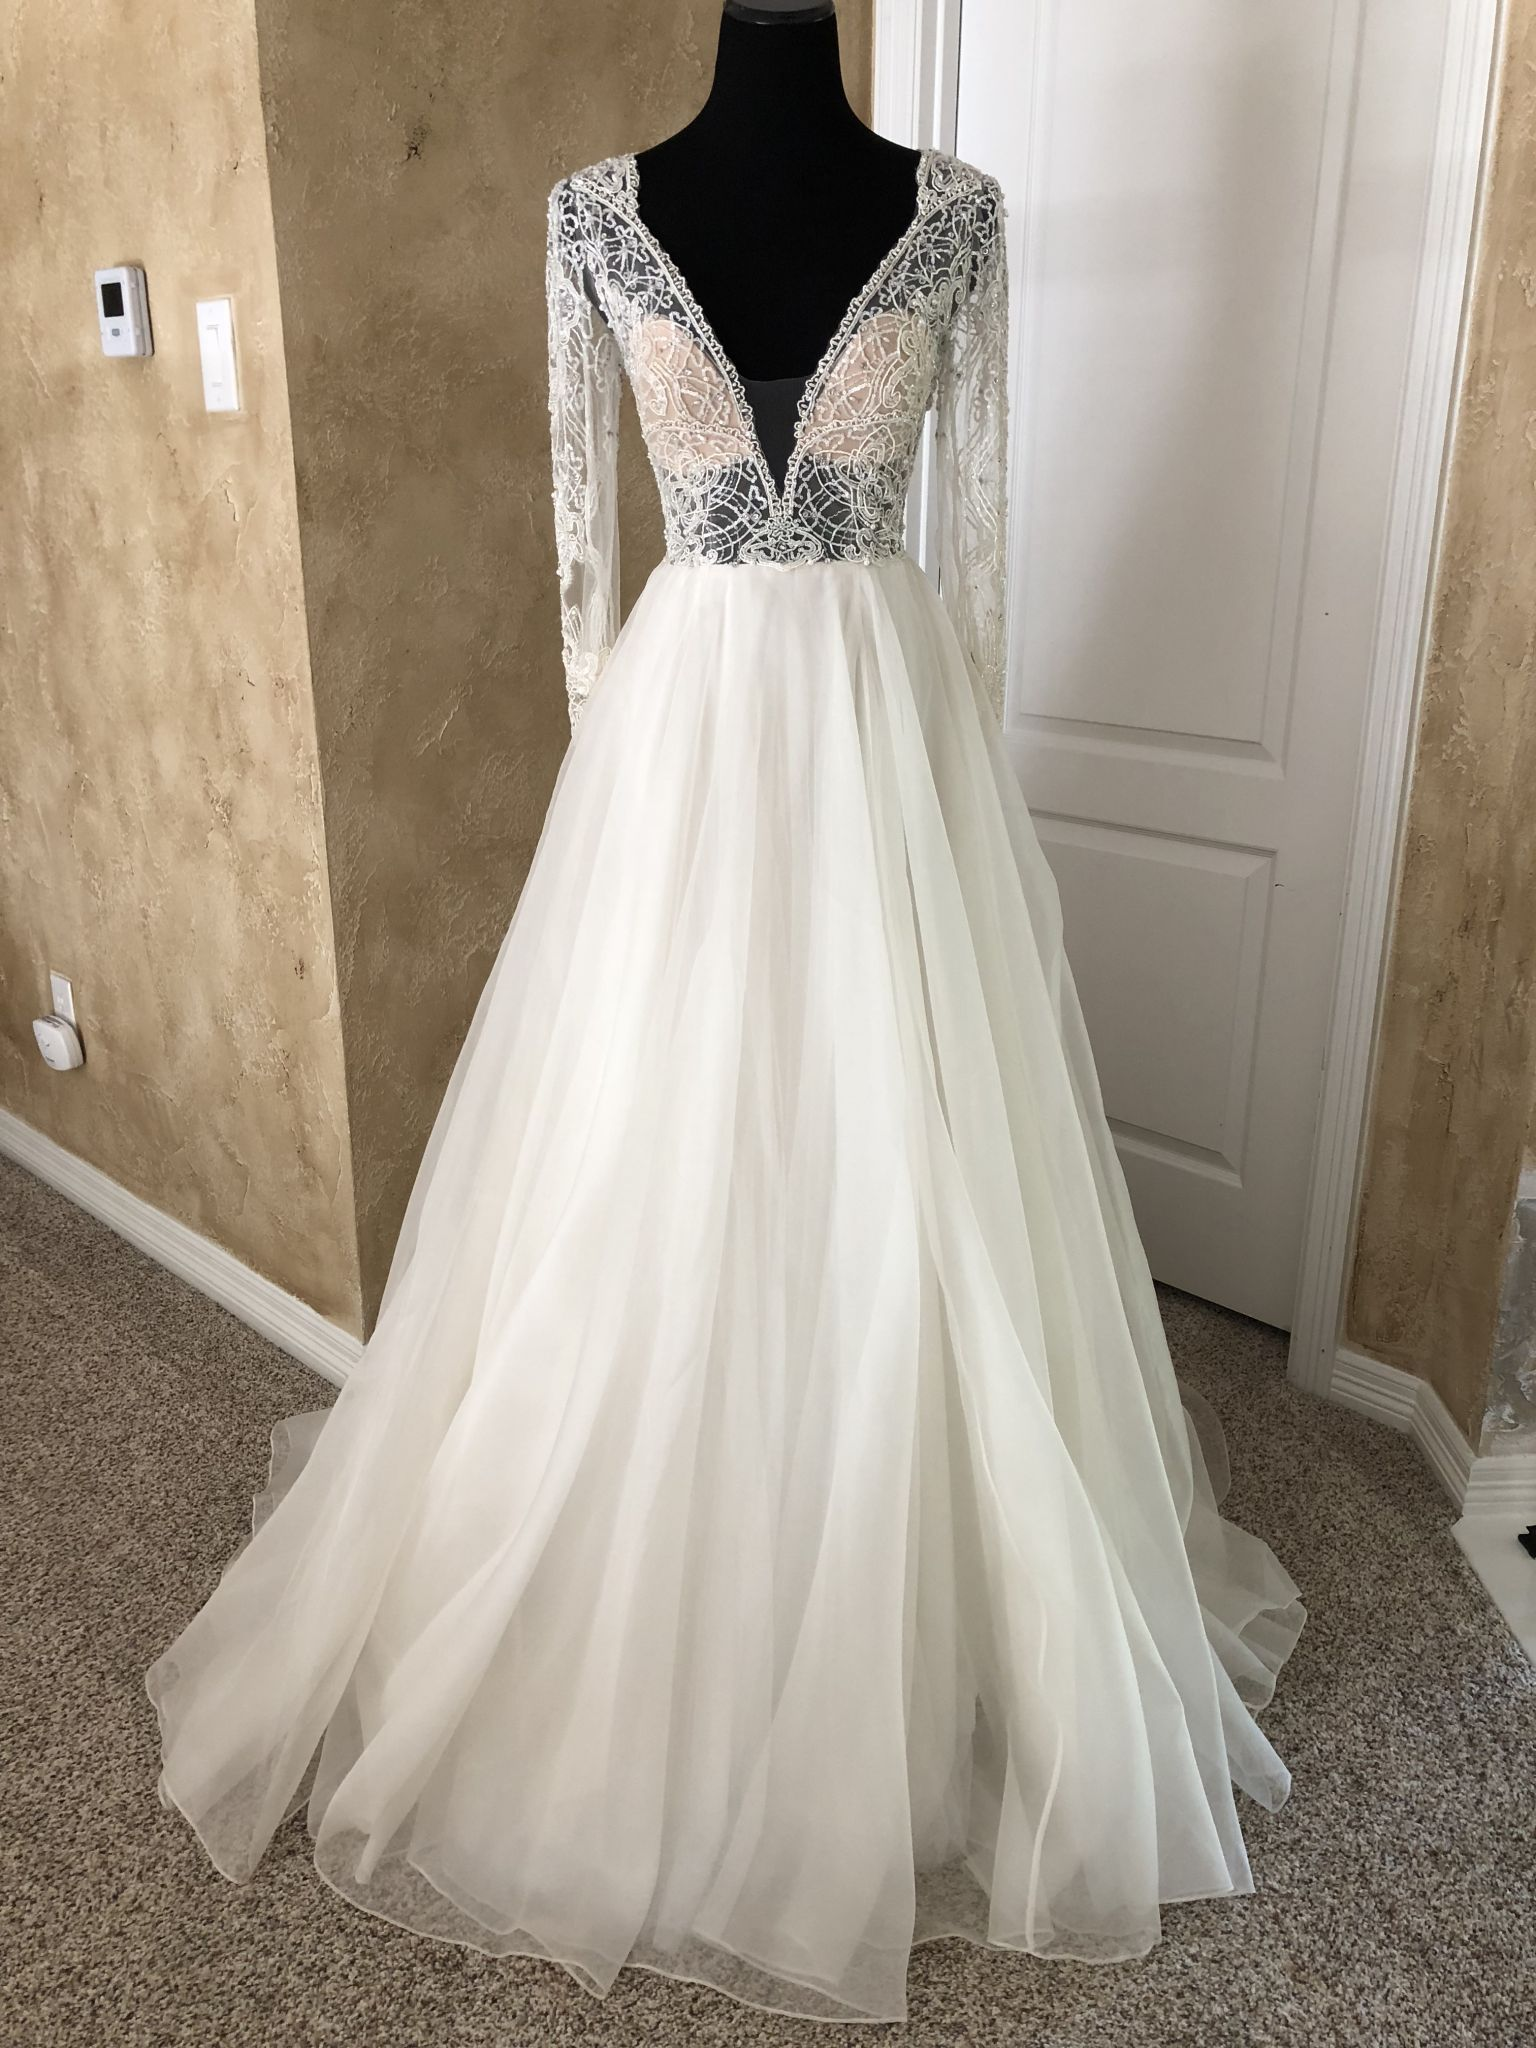 $1000 wedding dress  Watters b Lucretia  Size   New UnAltered Wedding